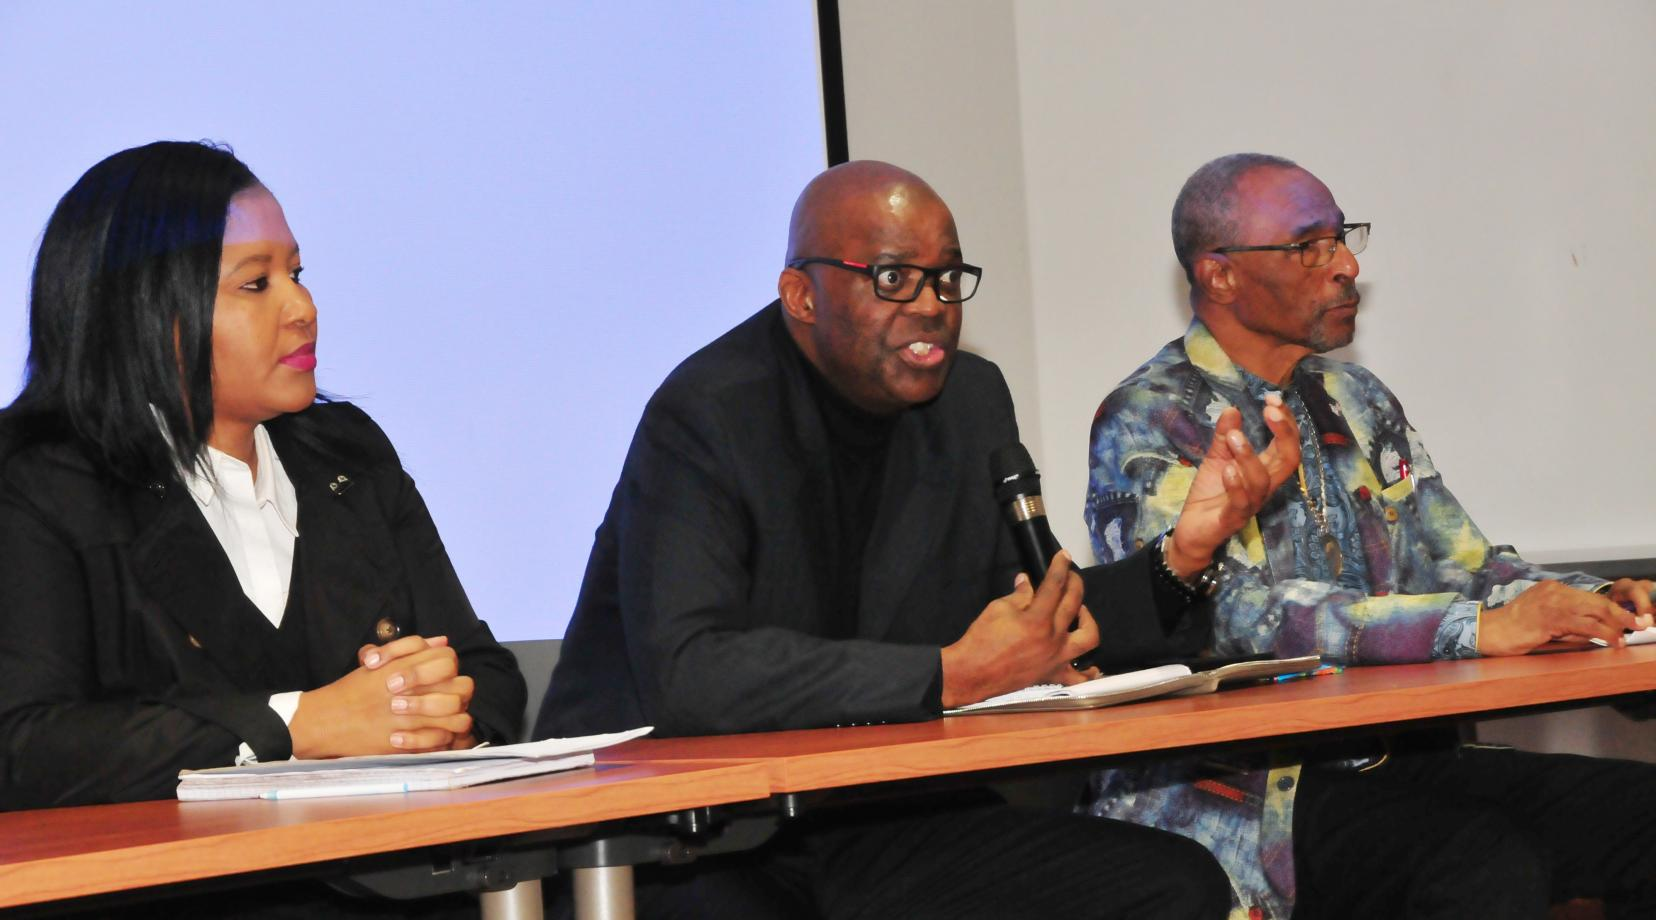 Dr. Eddy Maloka (center), CEO of the African Peer Review Mechanism, fields a question from the audience of DSU students. He is flanked by Tumi Dlamini (l), Dr. Maloka's advisor, and C. Gregory Turner, of Kool-Baker Global, a firm that invests in businesses in Africa.